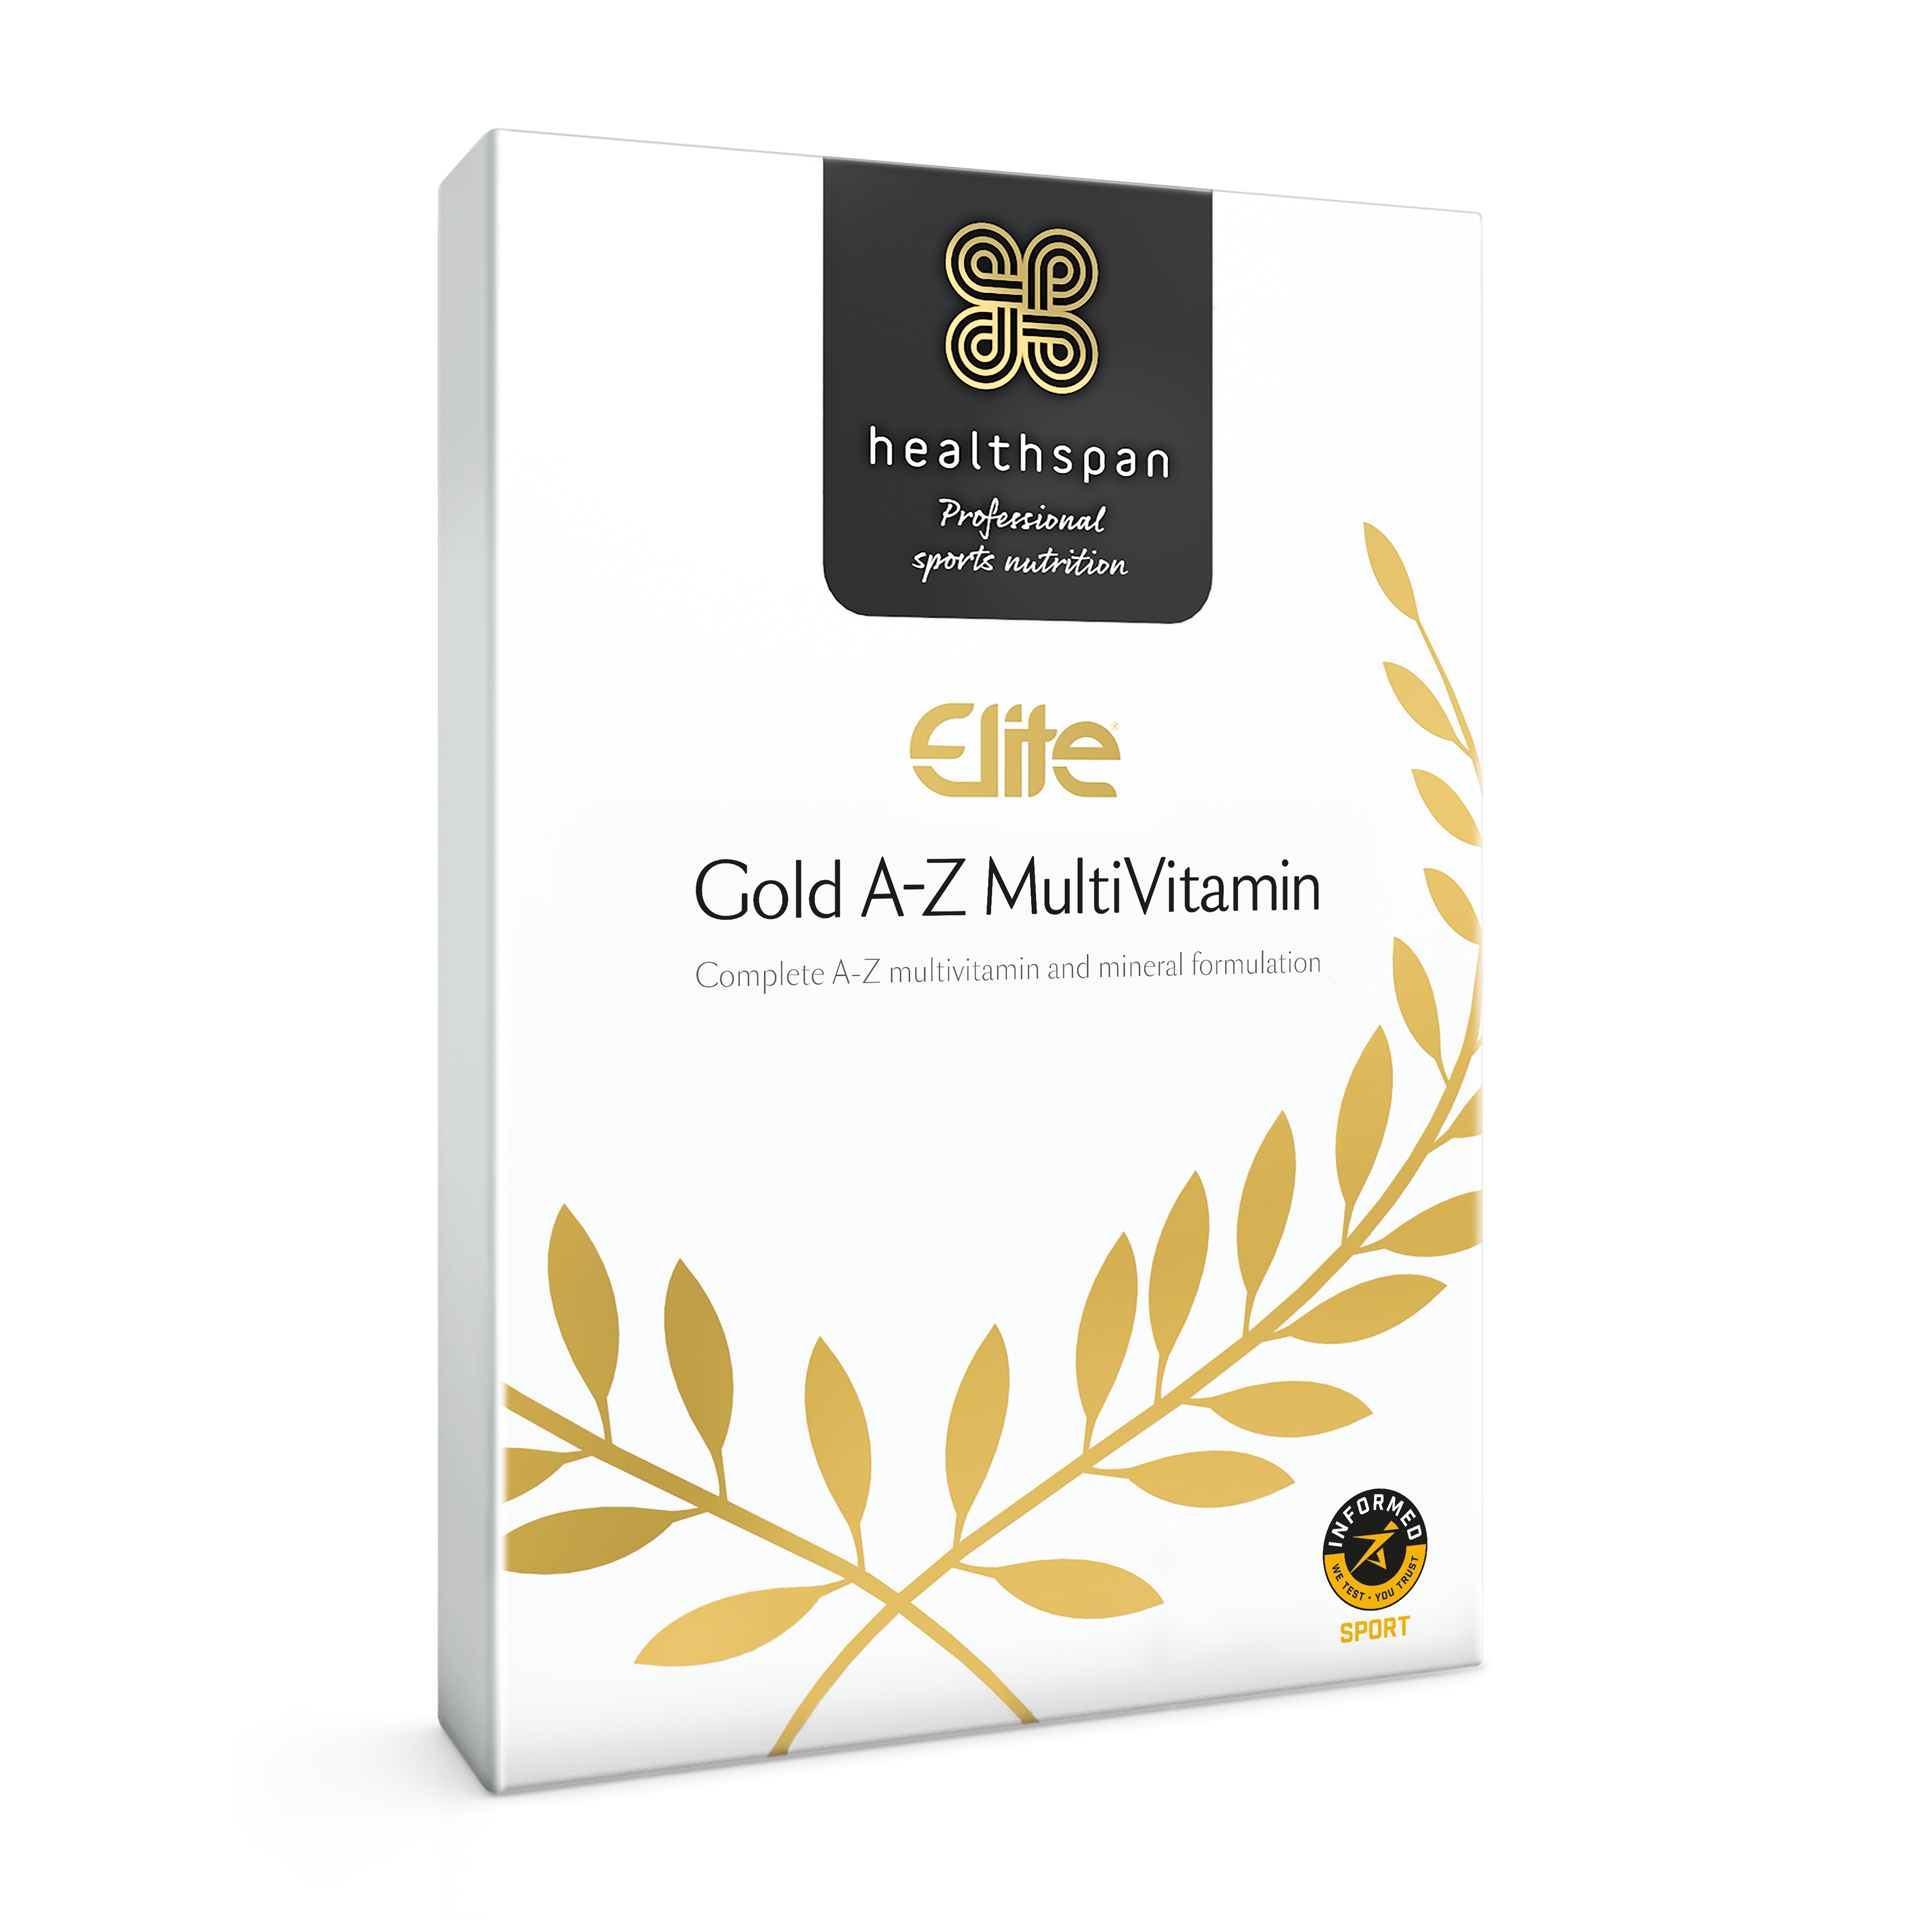 Elite Gold A-Z MultiVitamin